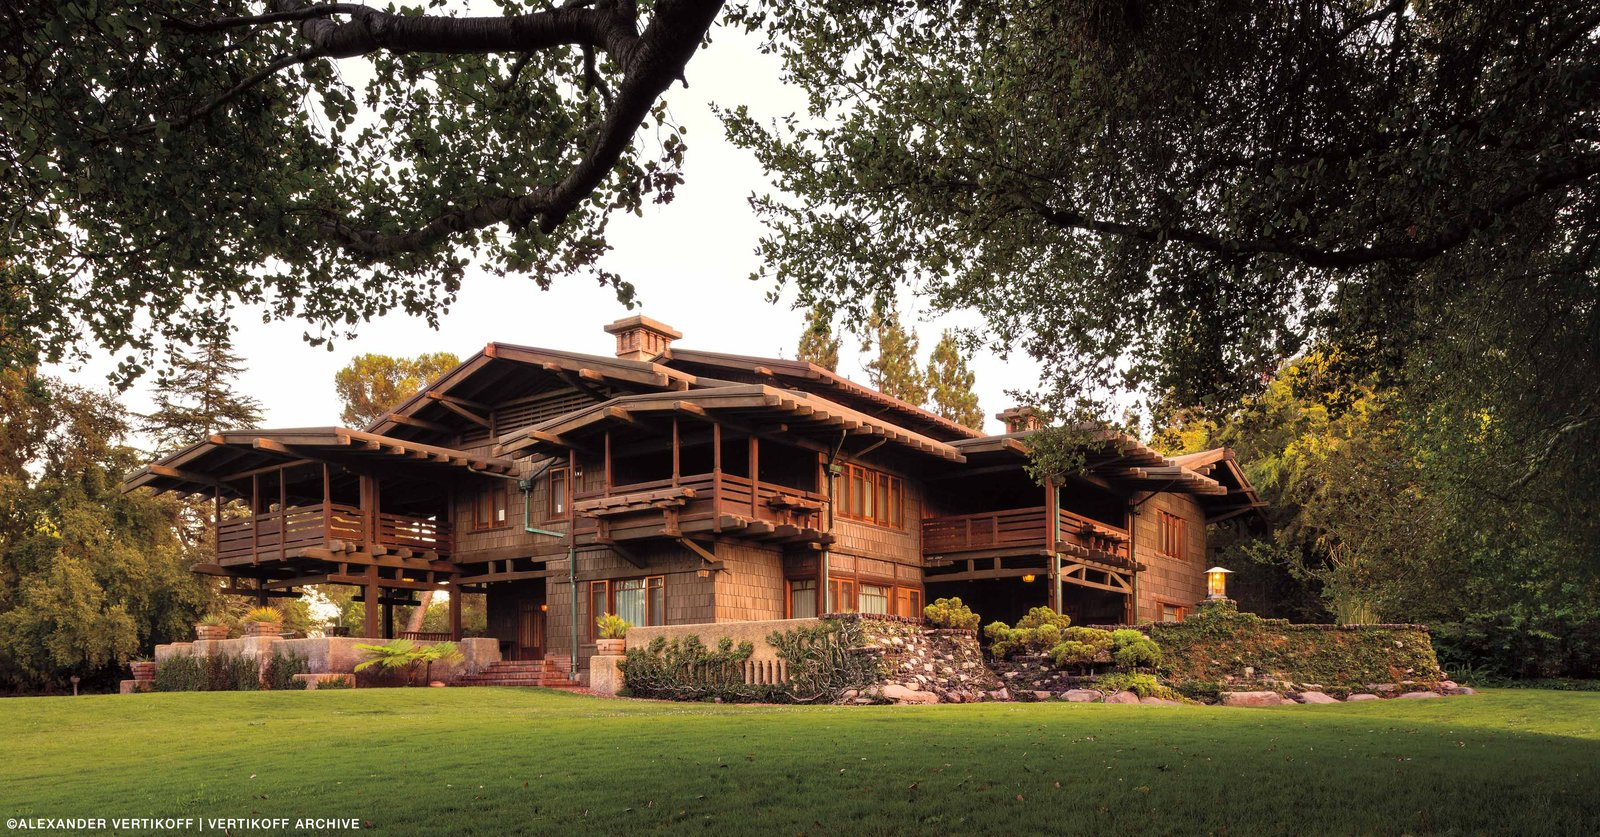 Photo 1 of 8 in Iconic Perspectives: Greene & Greene's Gamble House